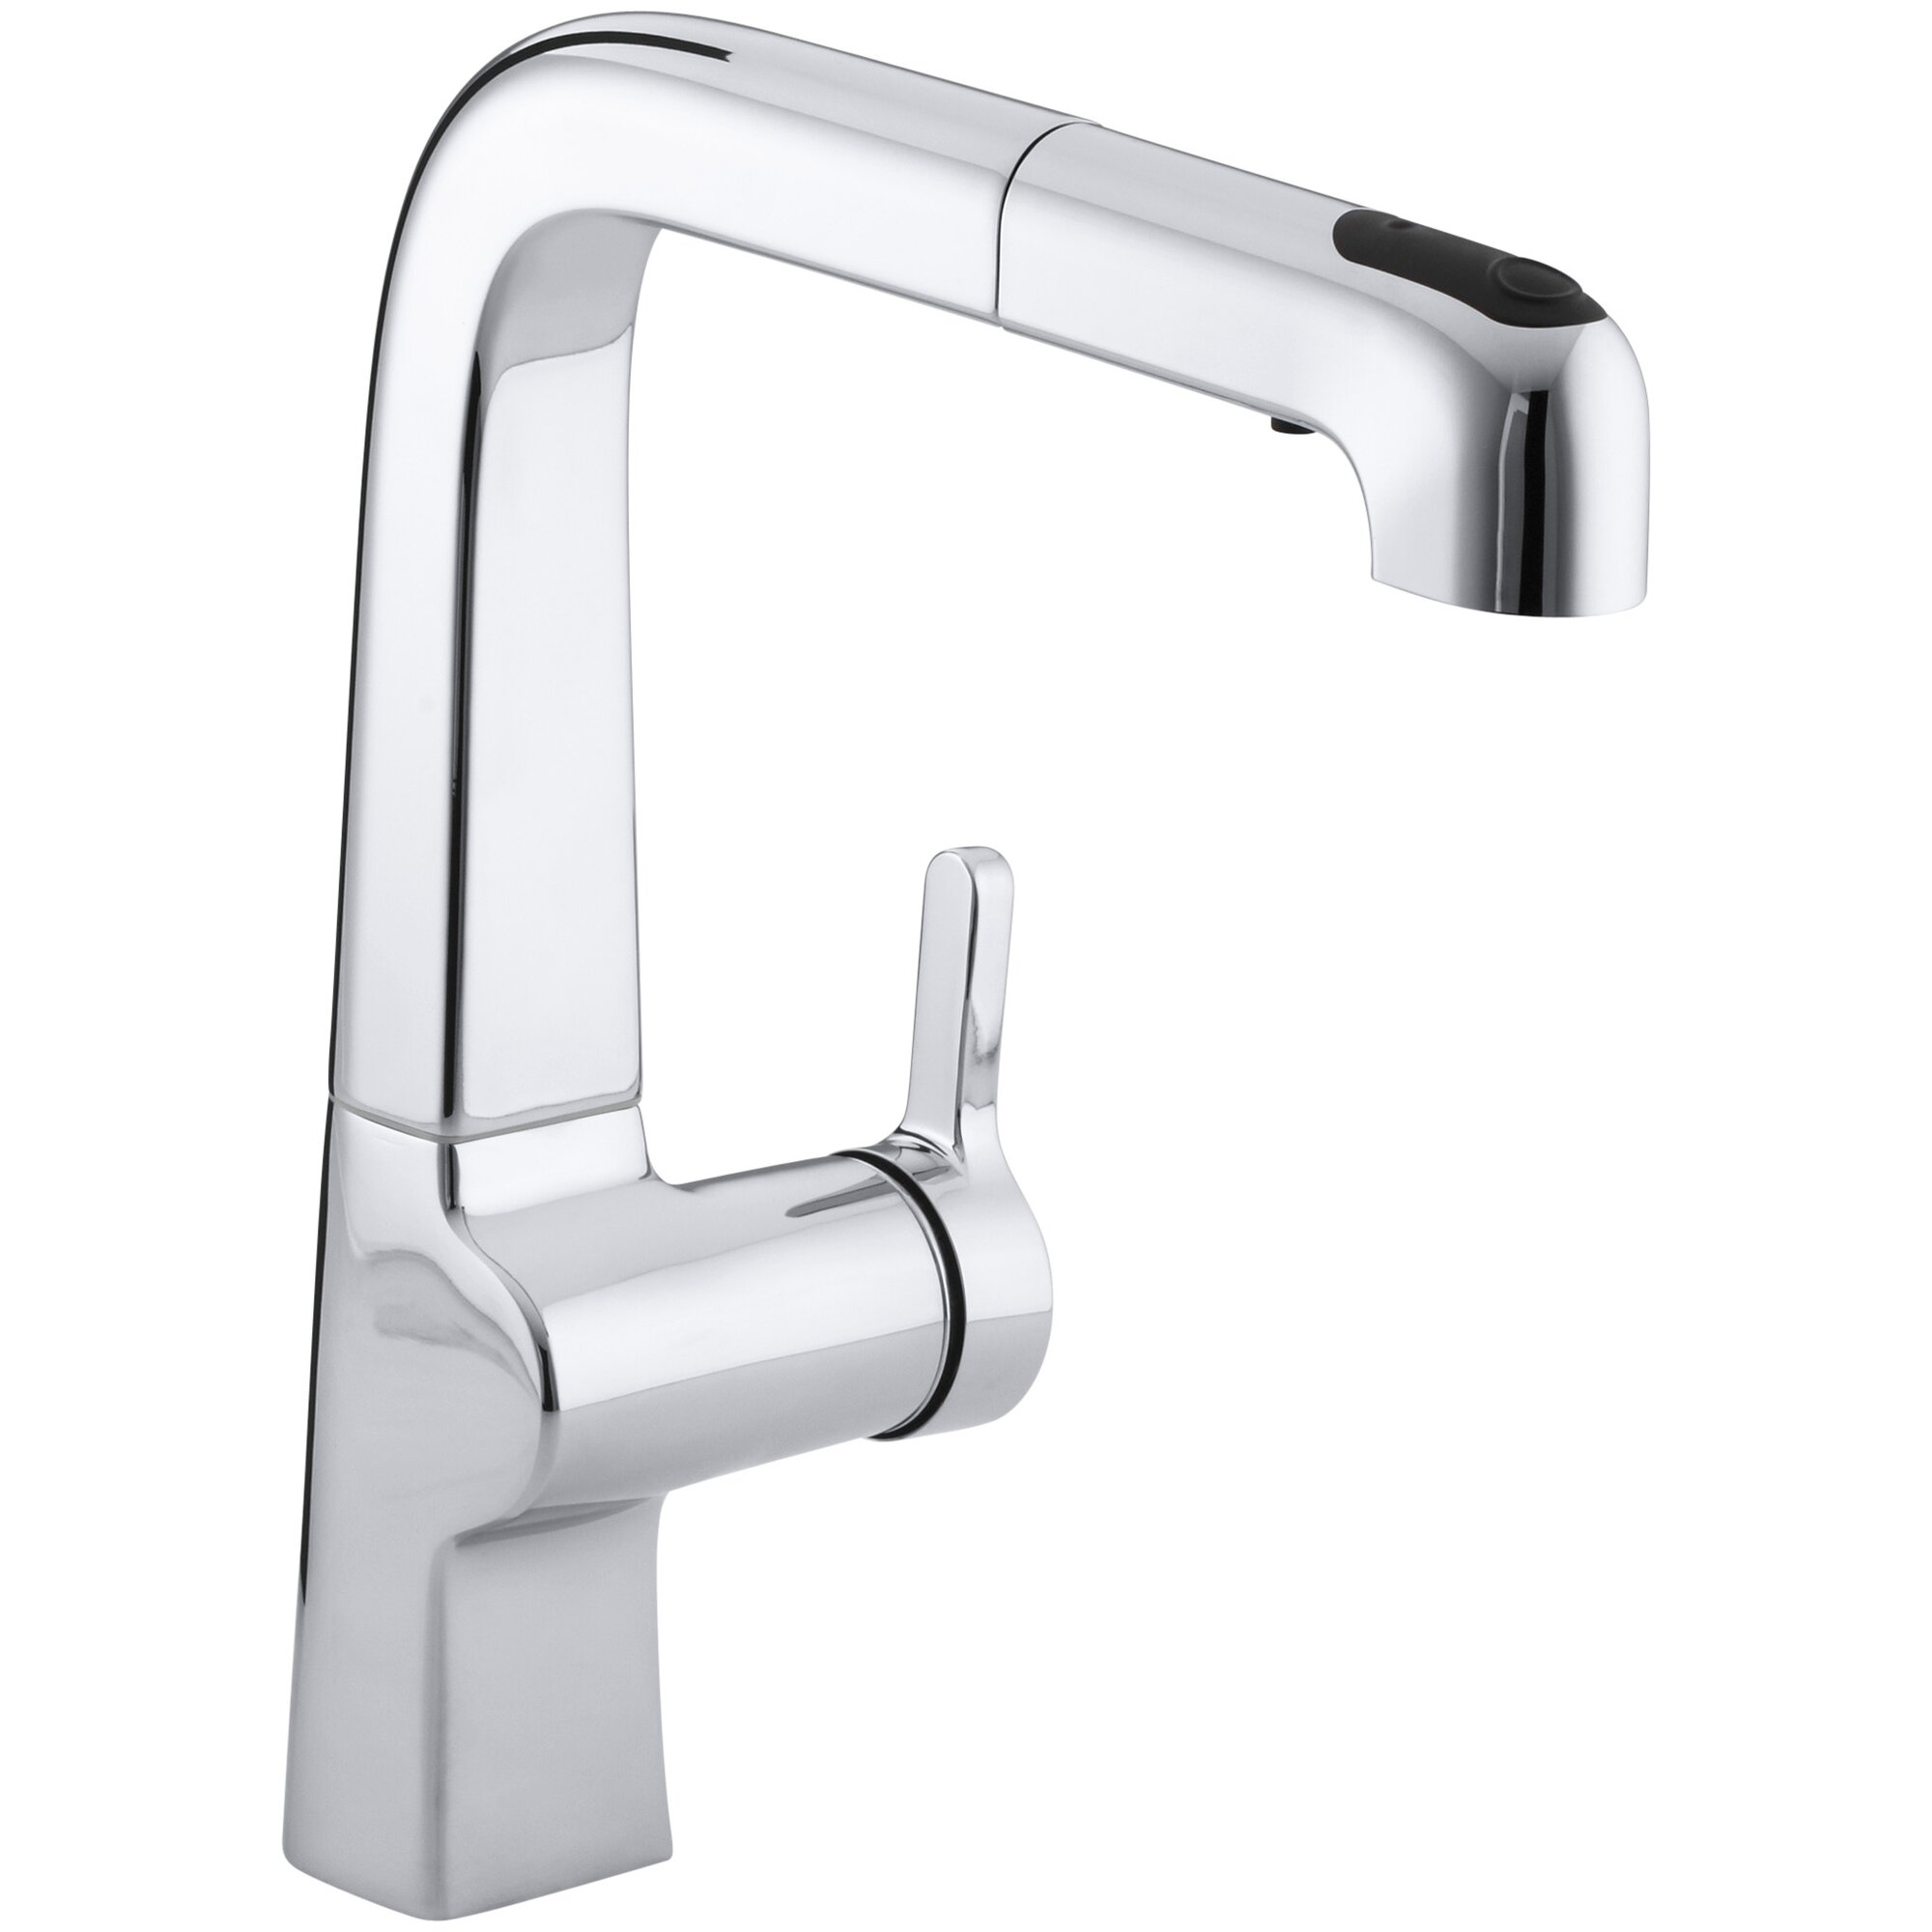 evoke single hole kitchen sink faucet with 9 pullout spout - Kitchen Sink Faucets